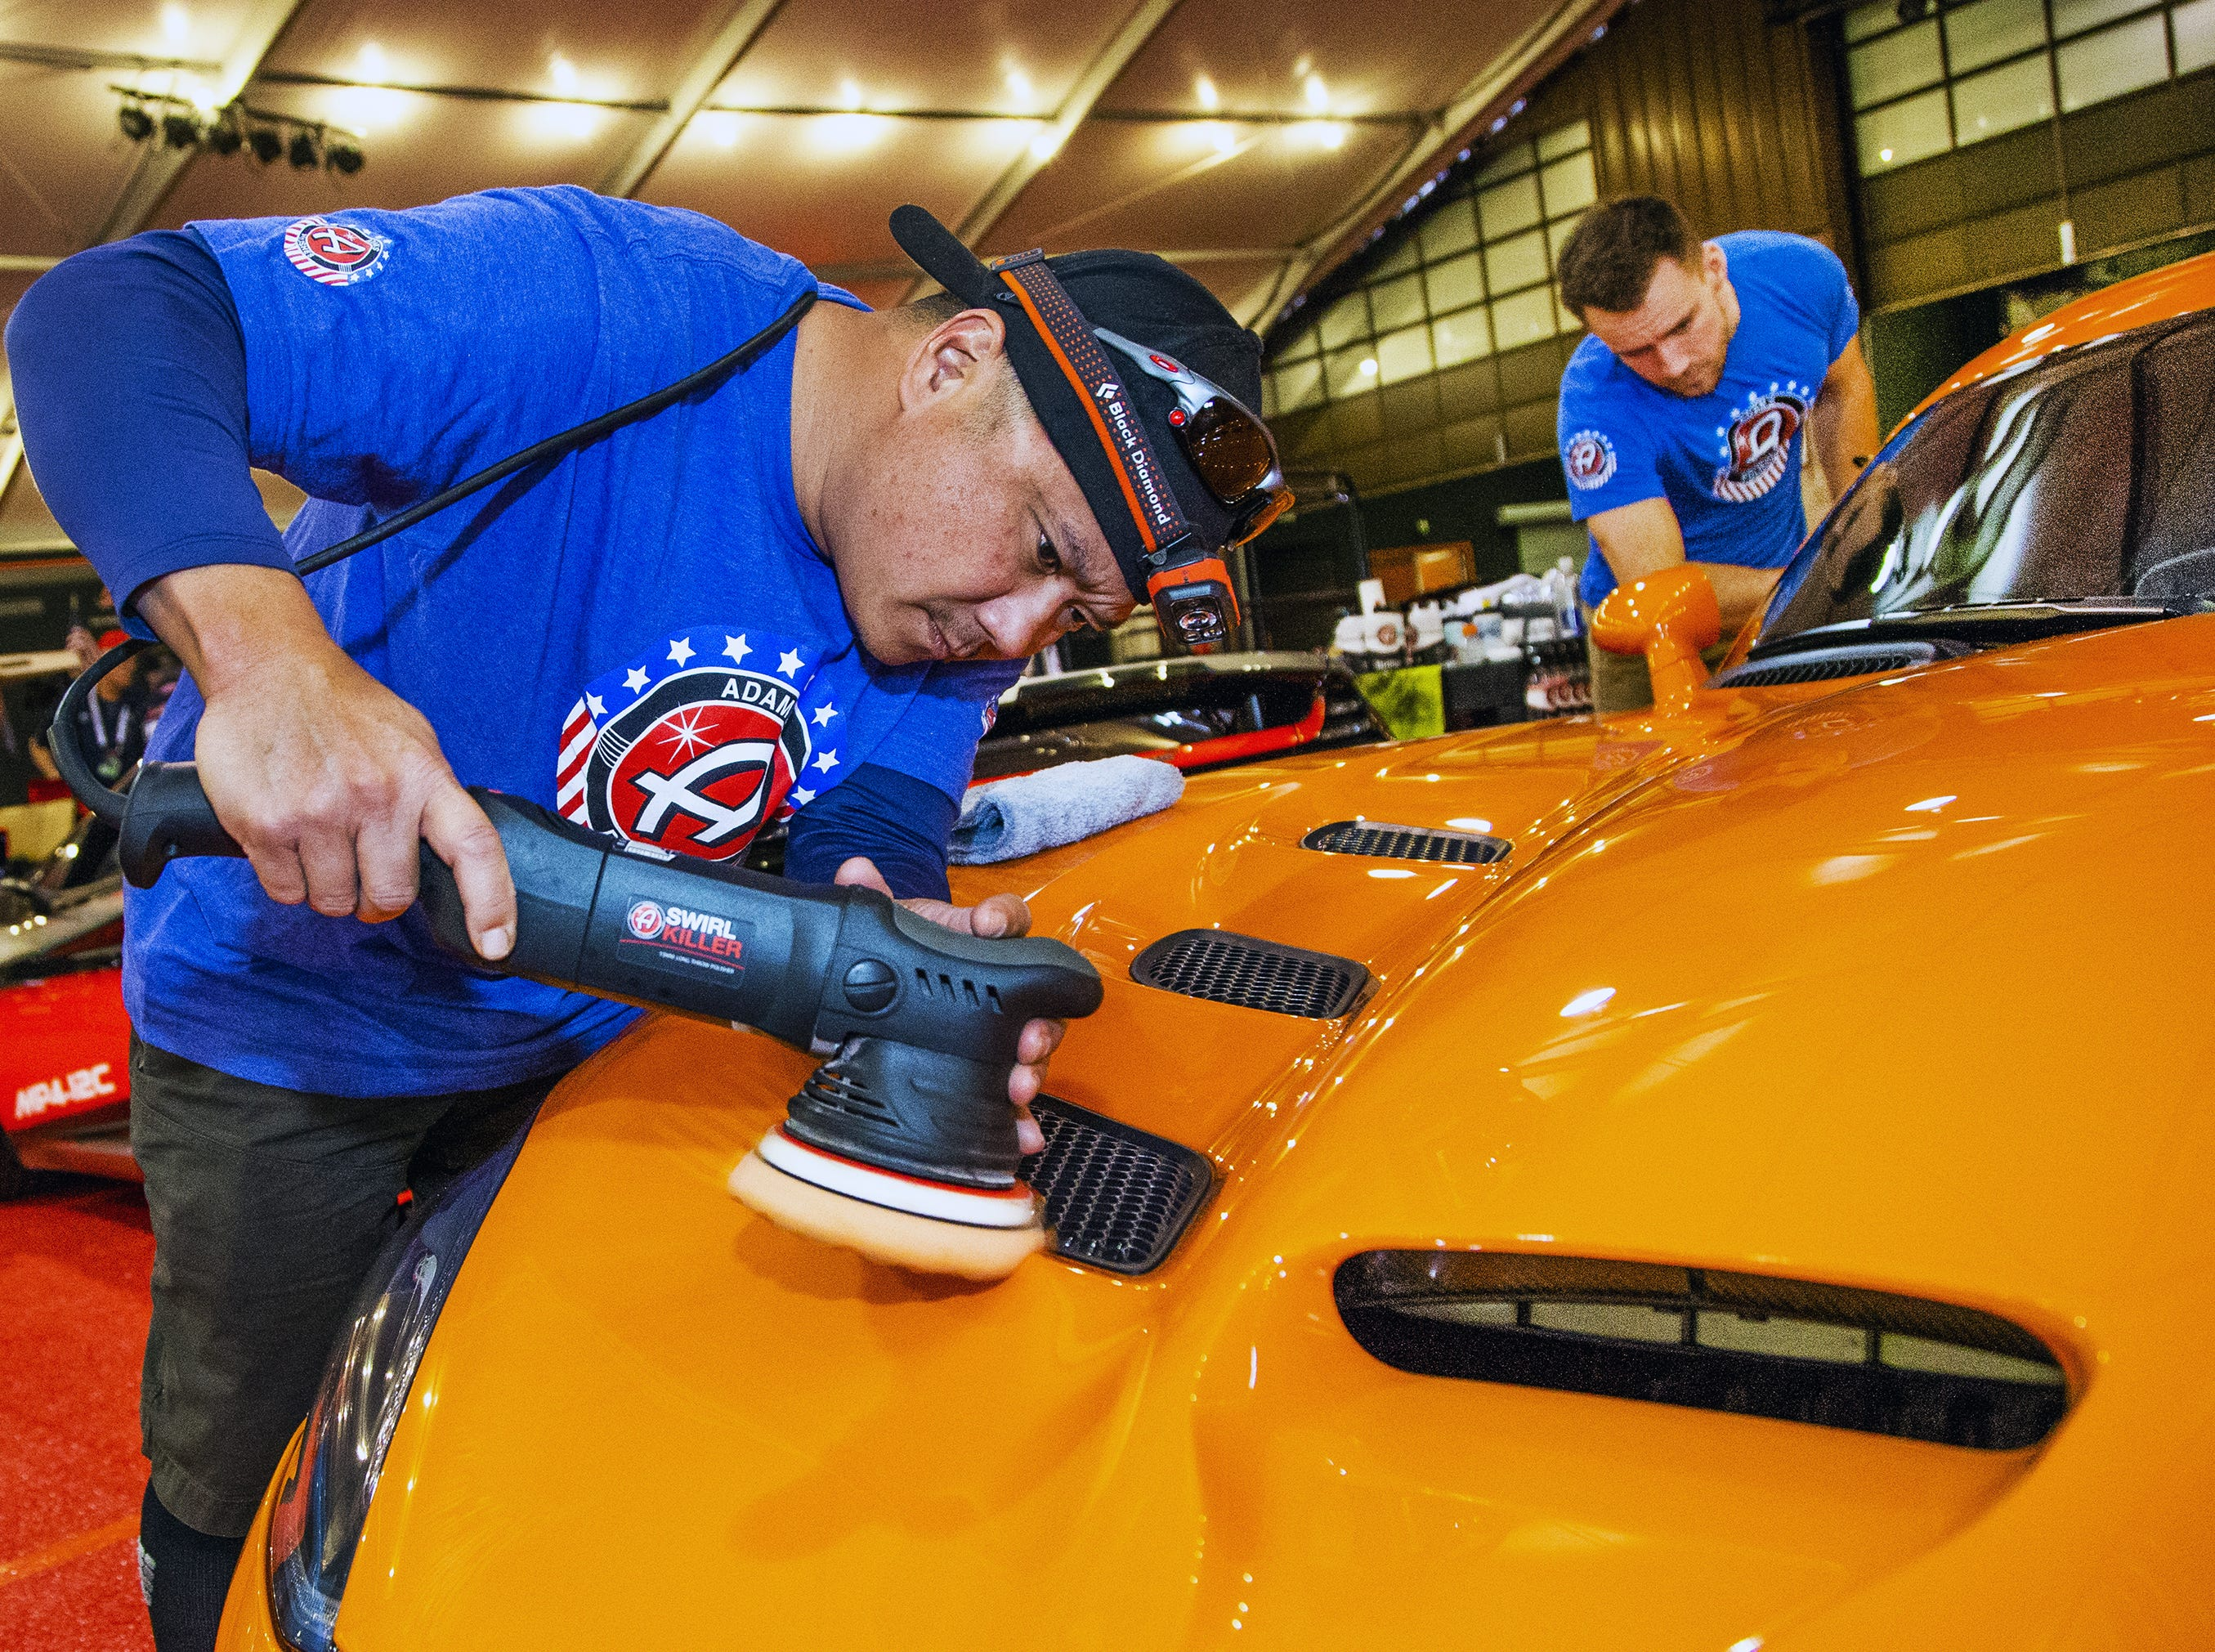 Detailers Kerwin Miyashiro (left) and Collin Albert of Adam's Polishes buff out a 2017 Dodge Viper ACR TA at the 48th Annual Barrett-Jackson Scottsdale Collector Car Auction at WestWorld that runs from January 12-20, 2019.